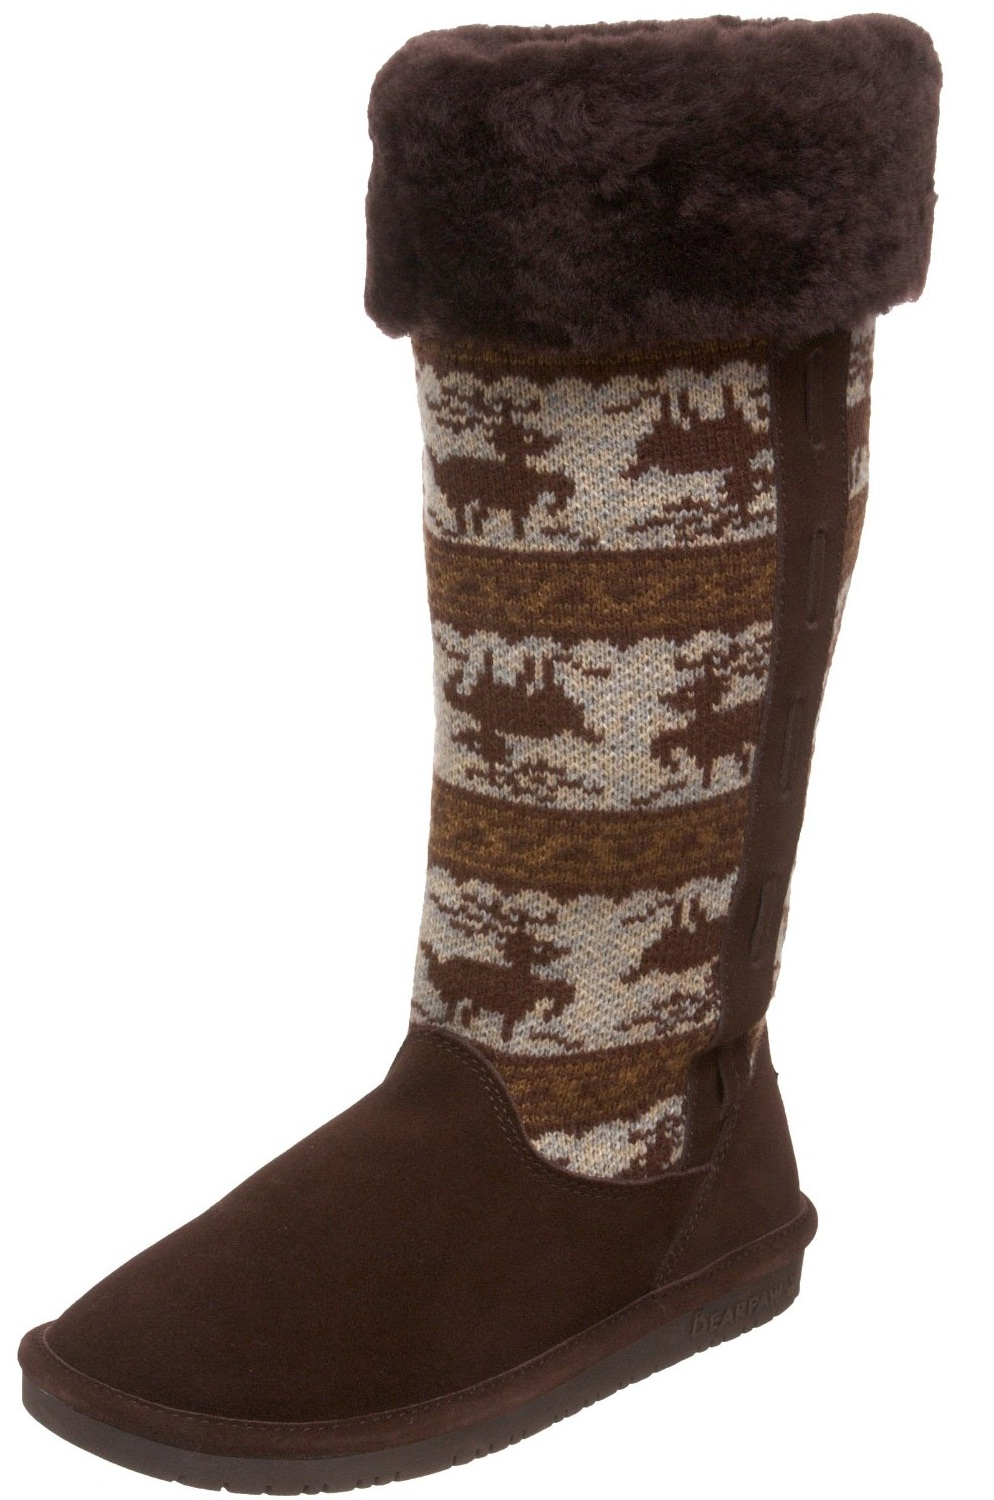 bearpaw s blitzen knee high knit boots ebay